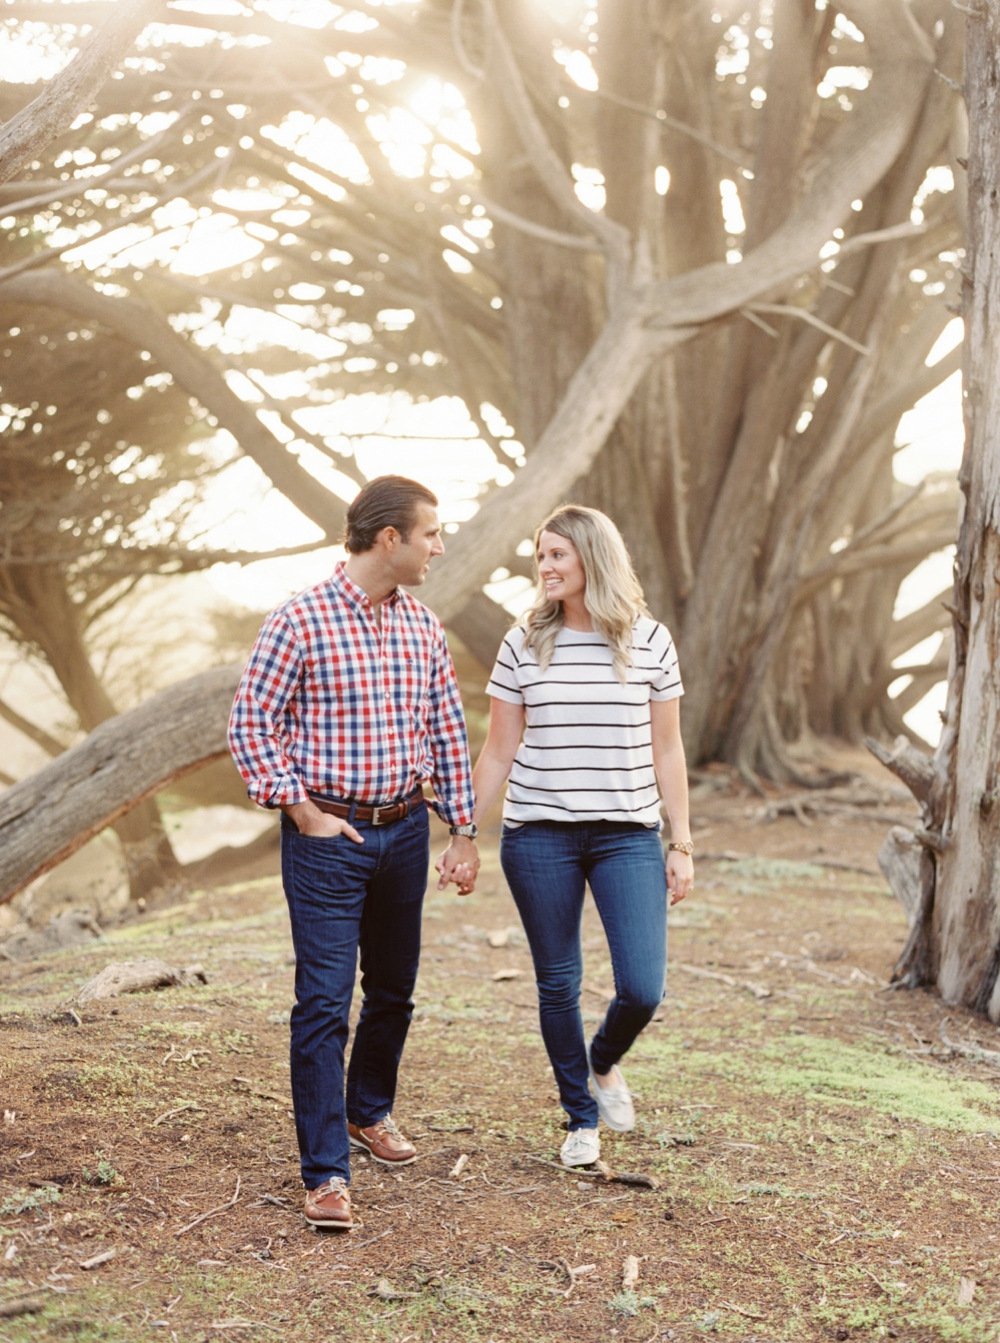 California Wedding Photographers | Big Sur Engagement Session | Fine Art Film Photographers | Justine Milton Photography